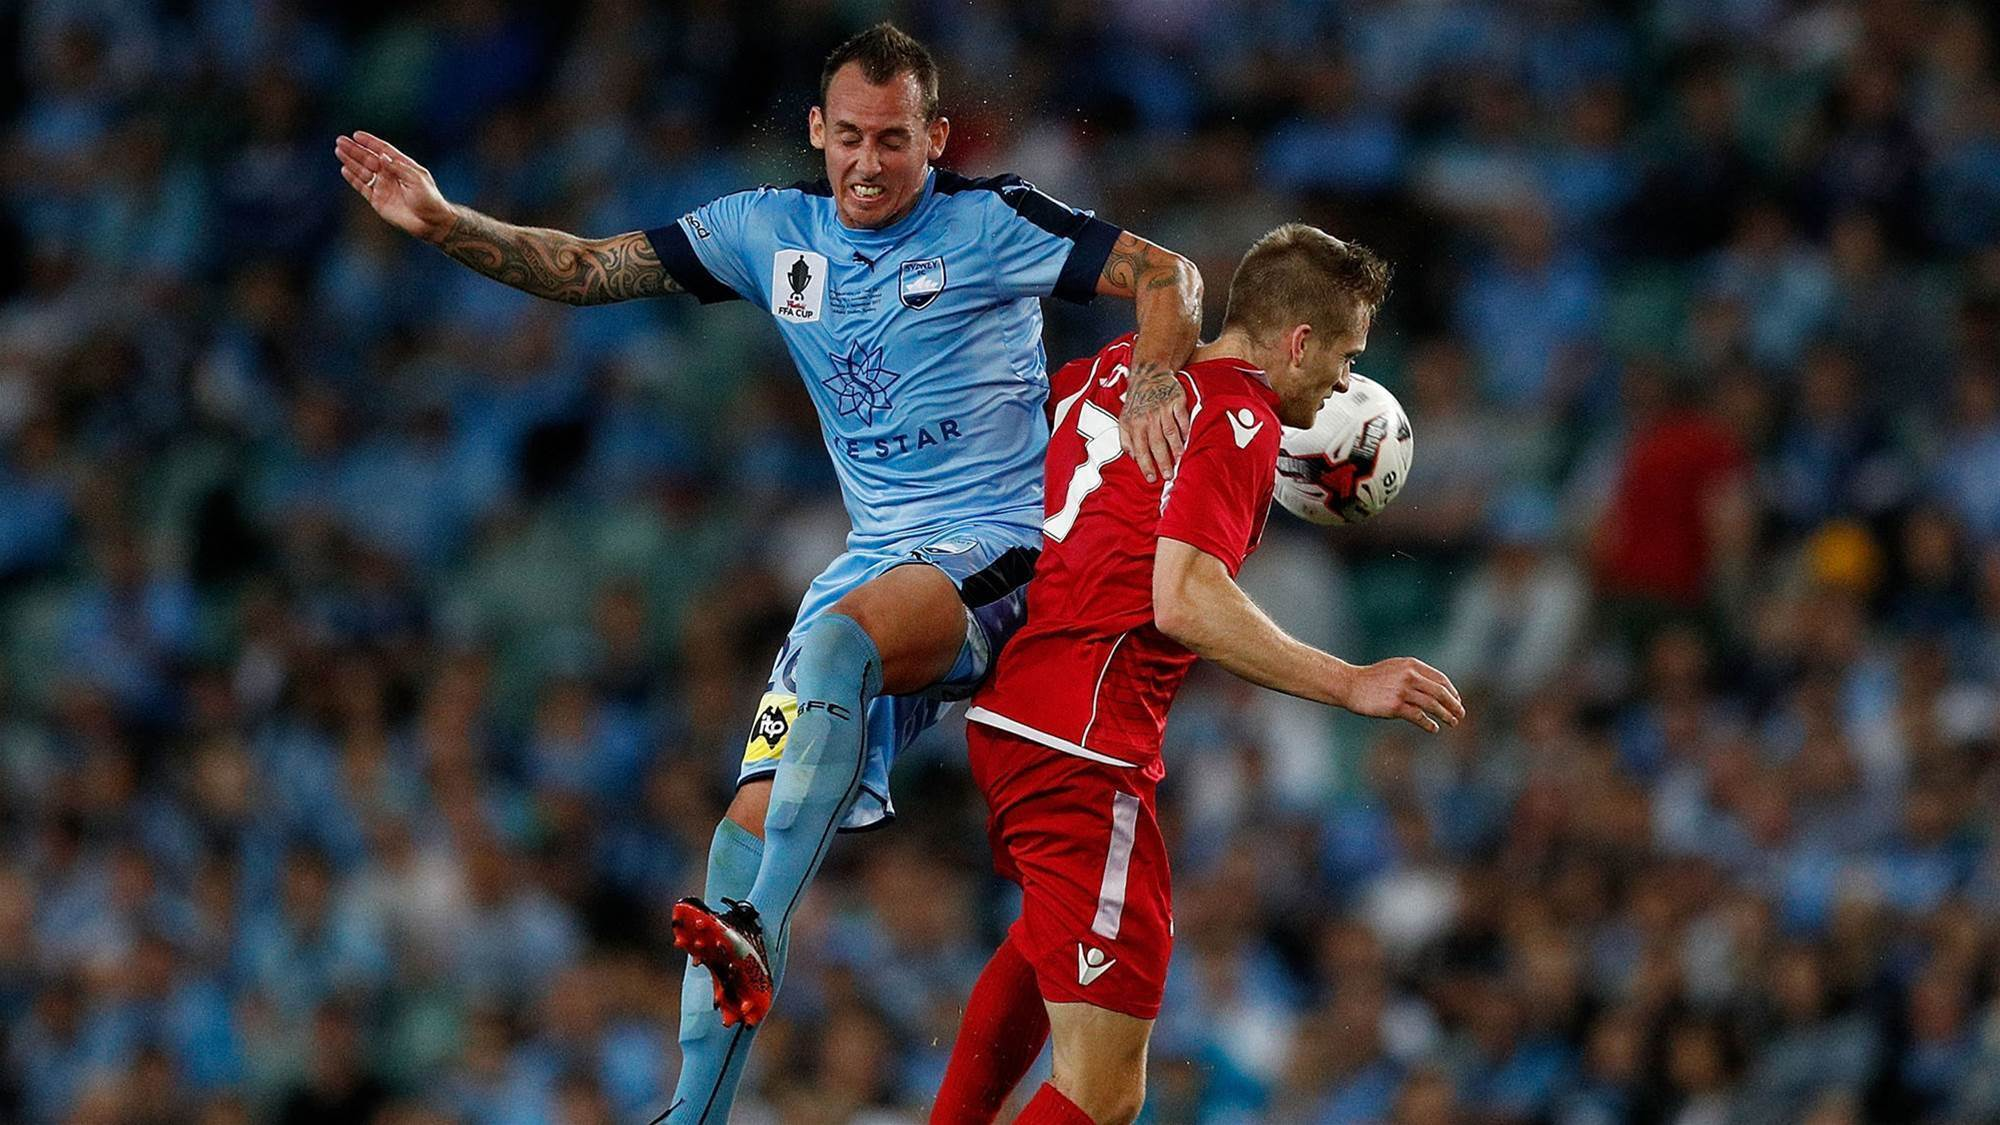 FFA Cup Final: Sydney v Reds player ratings